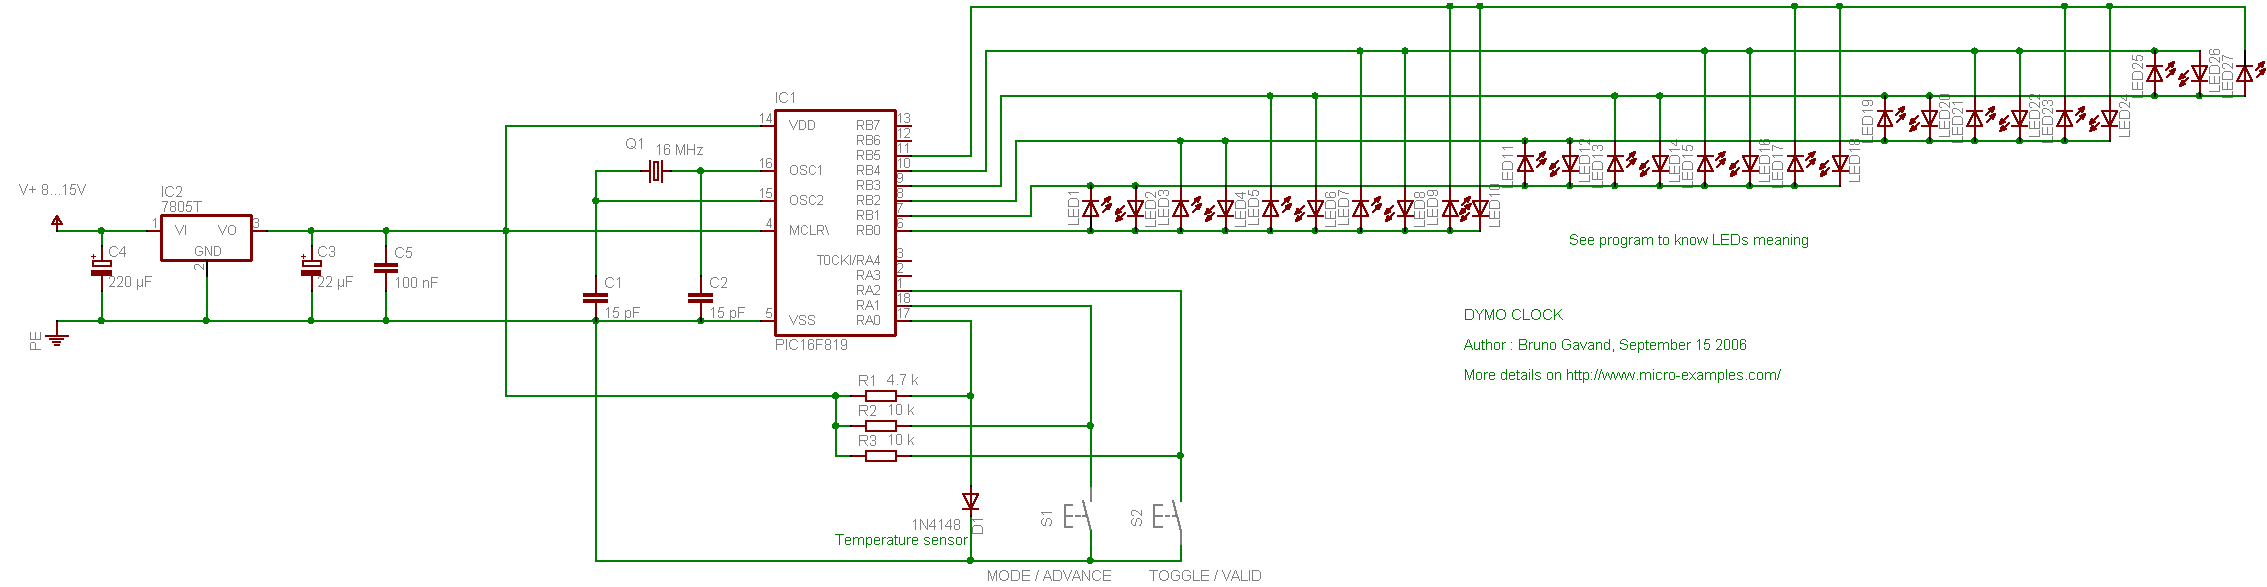 DymoClock circuit schematic